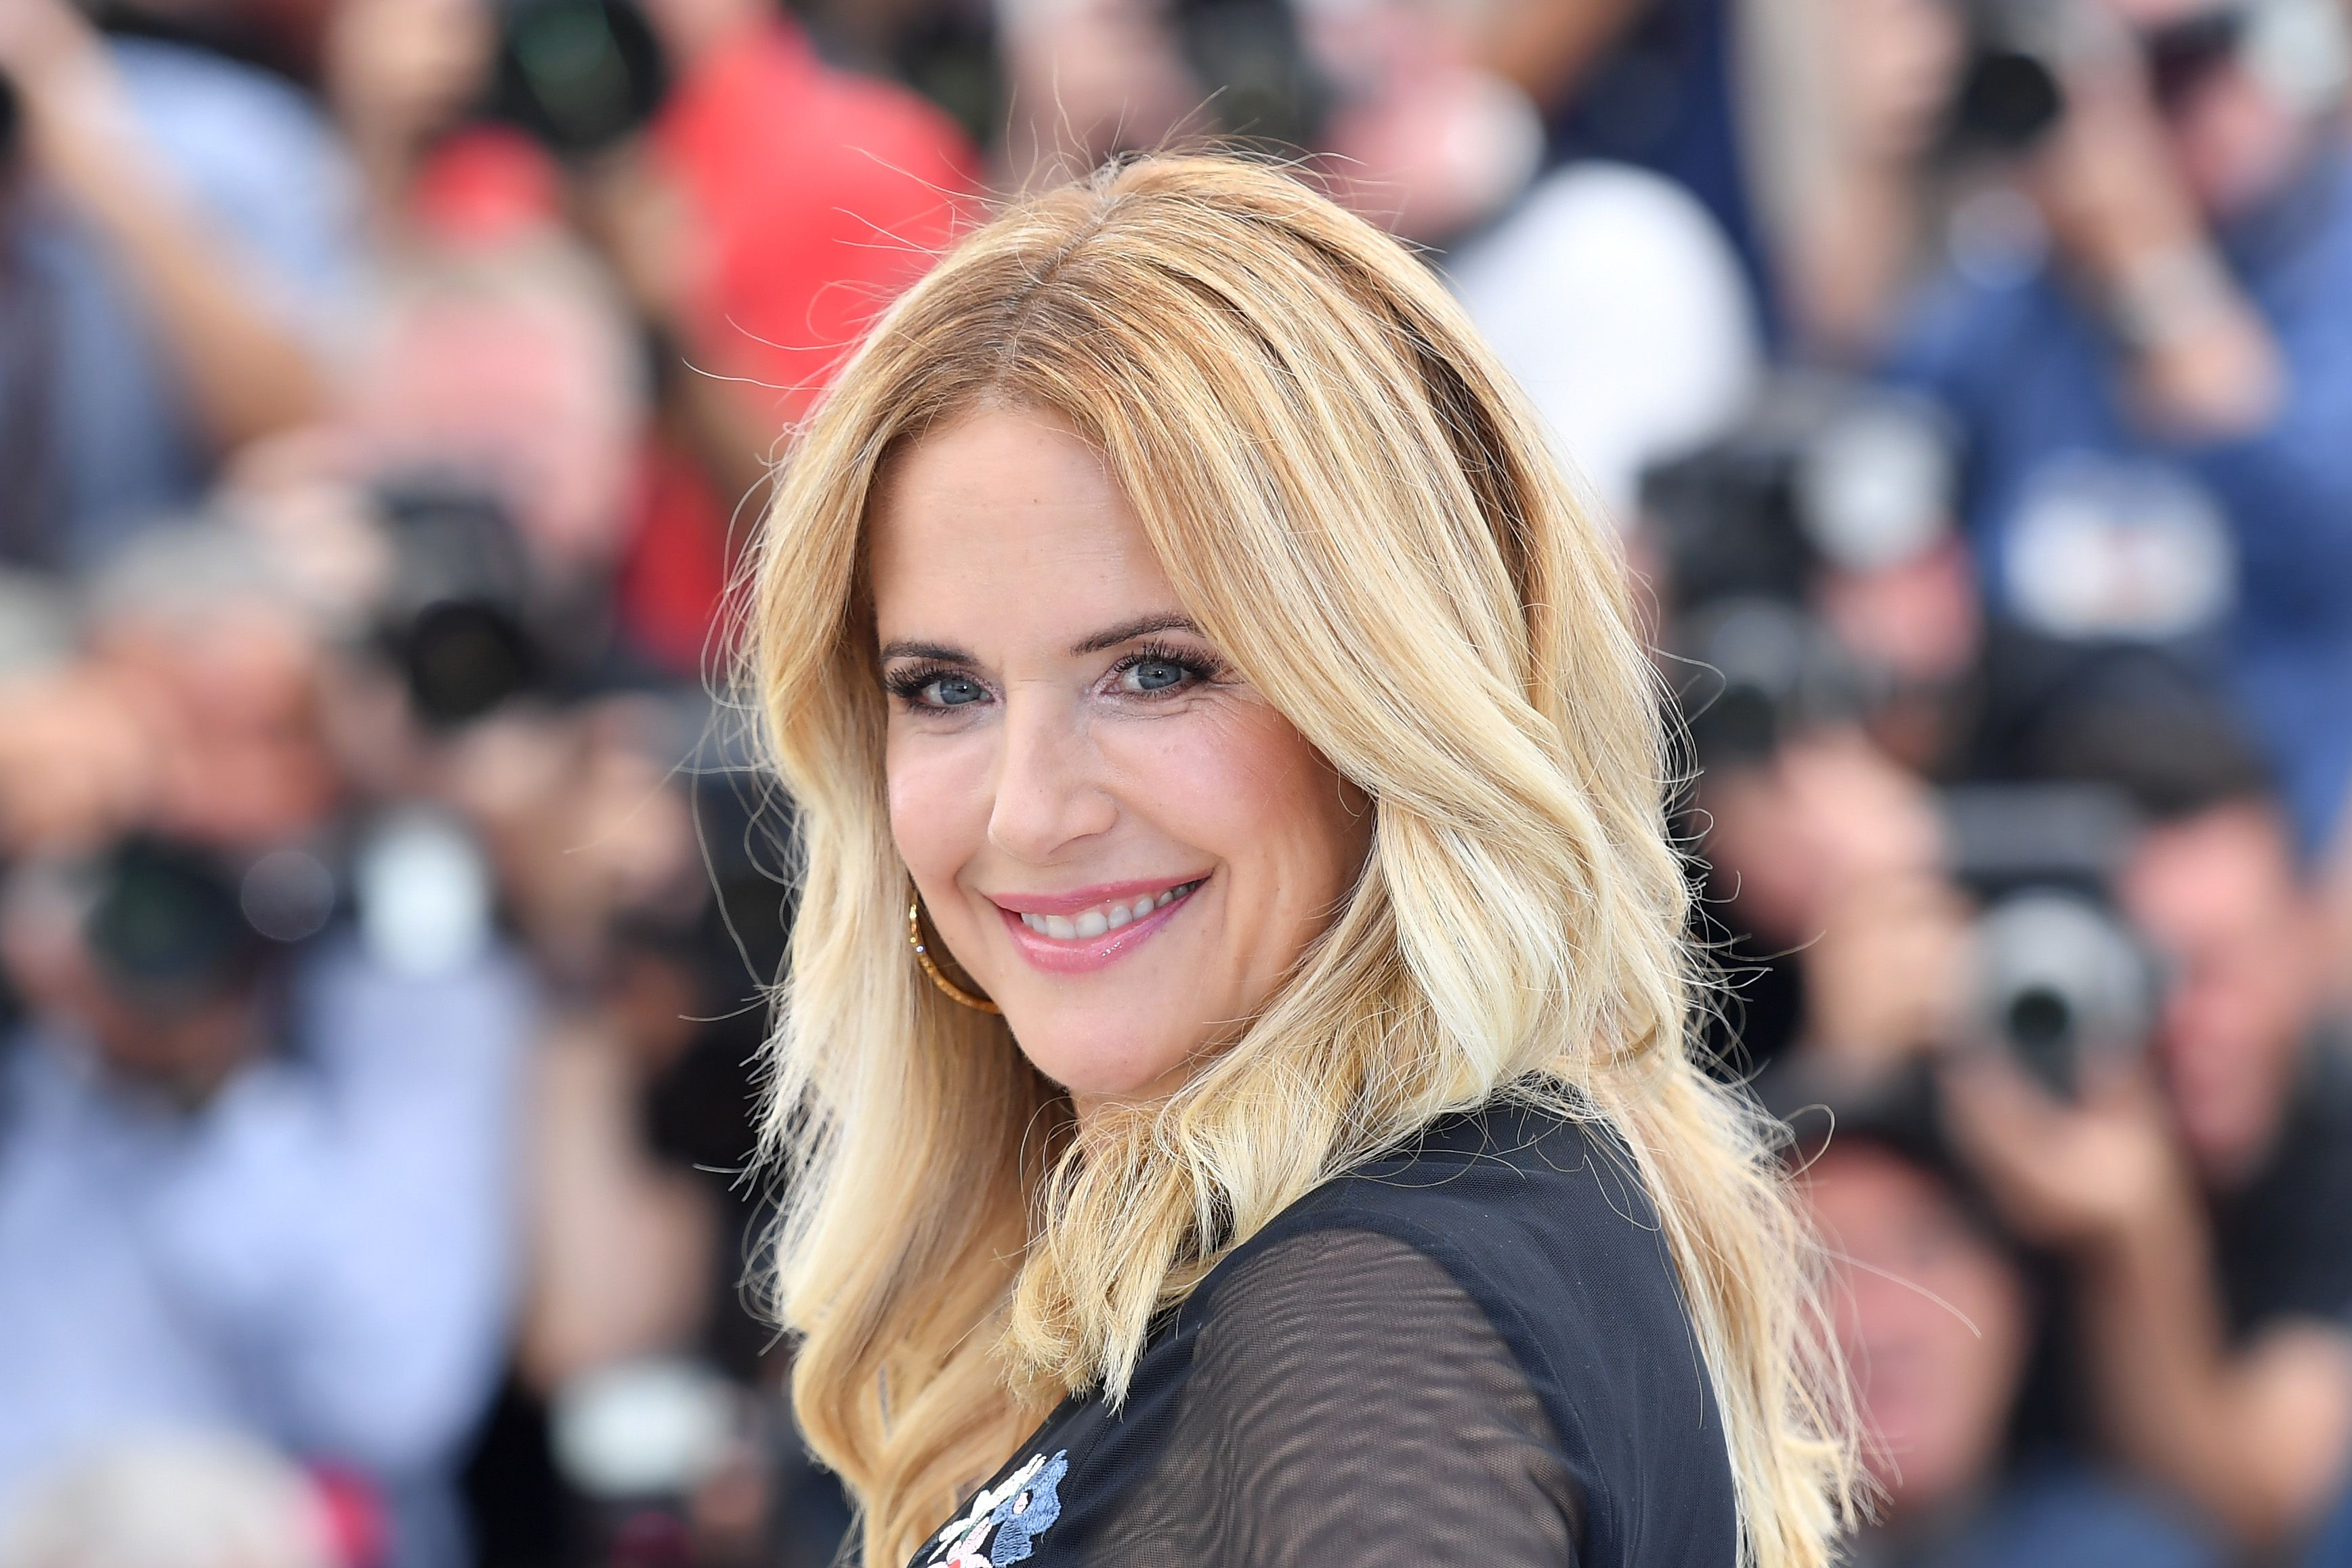 Kelly Preston at the 71st annual Cannes Film Festival in 2018 in Cannes, France | Photo: Getty Images